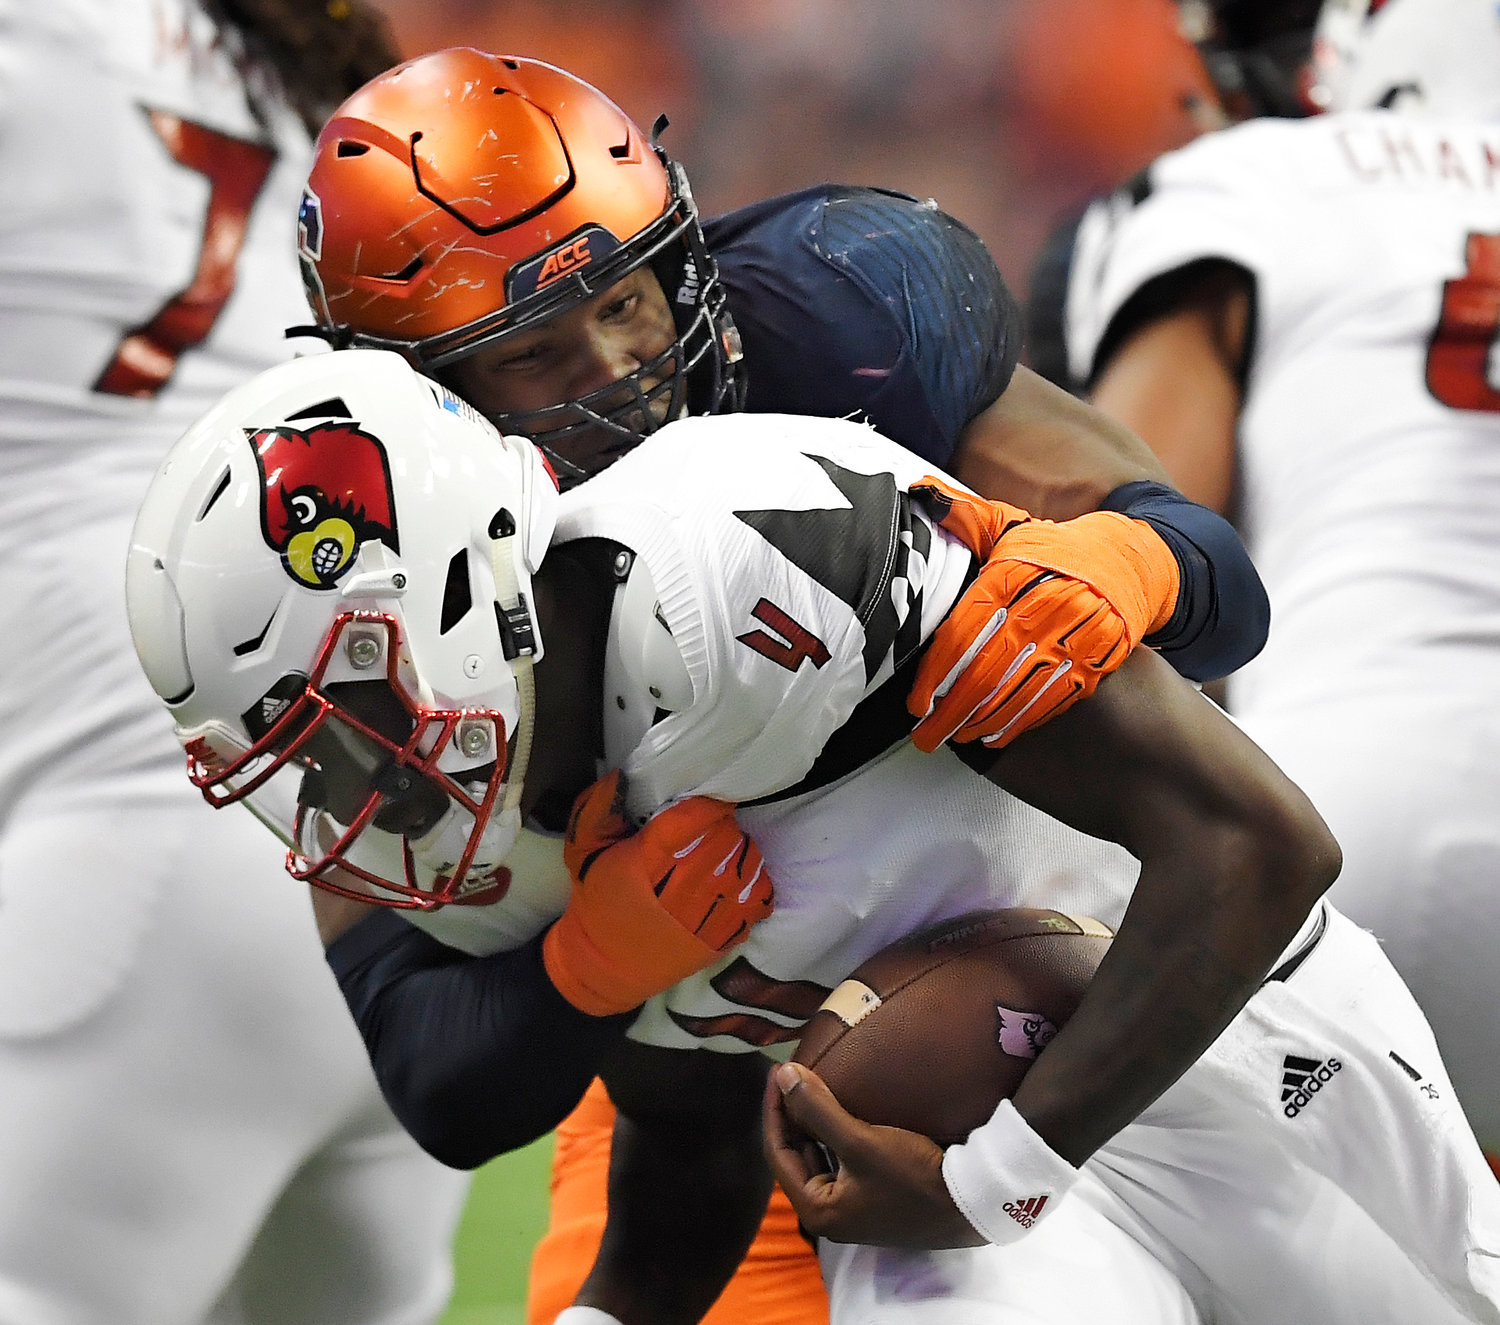 DEFENSIVE LEADER — Syracuse defensive lineman Alton Robinson, top, sacks Louisville quarterback Jawon Pass during the second half of last year's game at the Carrier Dome. Robinson is among the key returning players for the Orange.